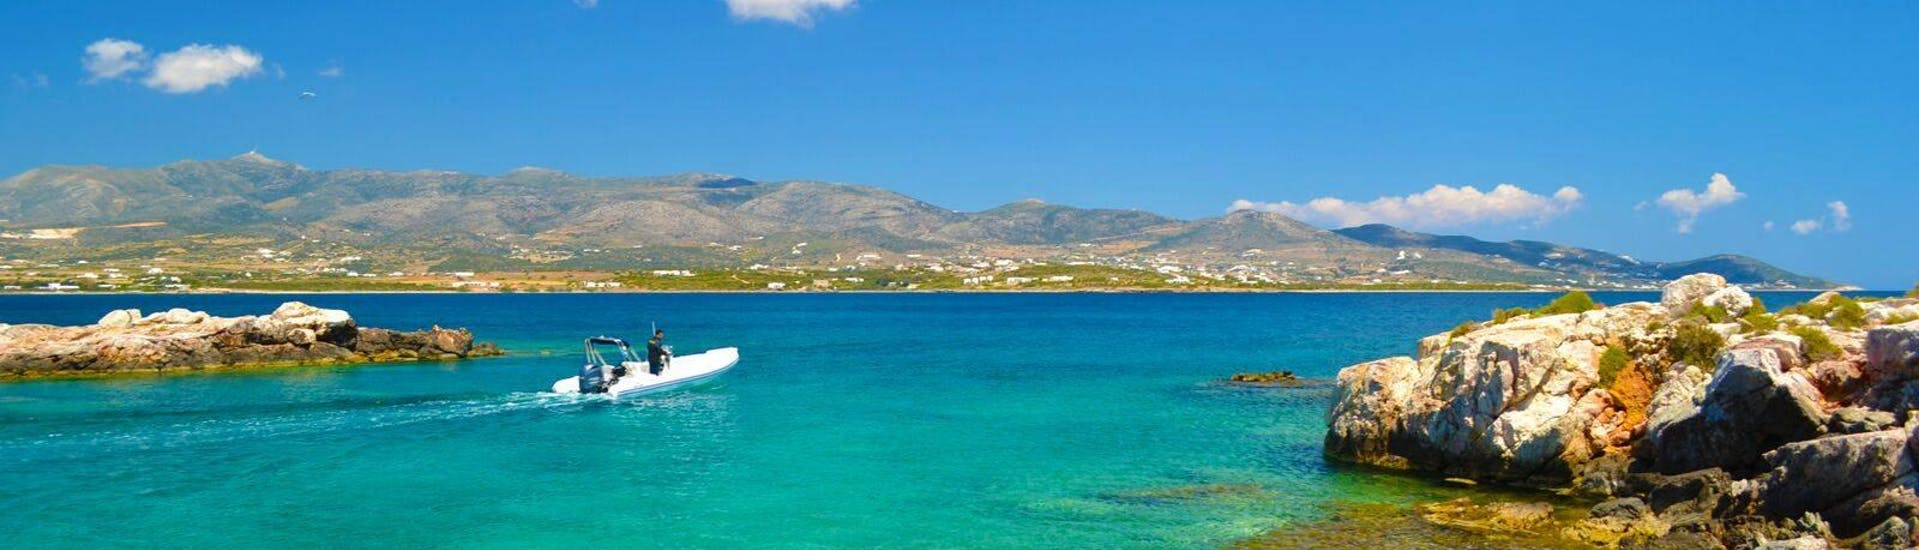 Our guests setting off during the Lagoon and Drios Boat Tour from Paros with G3 Boats.